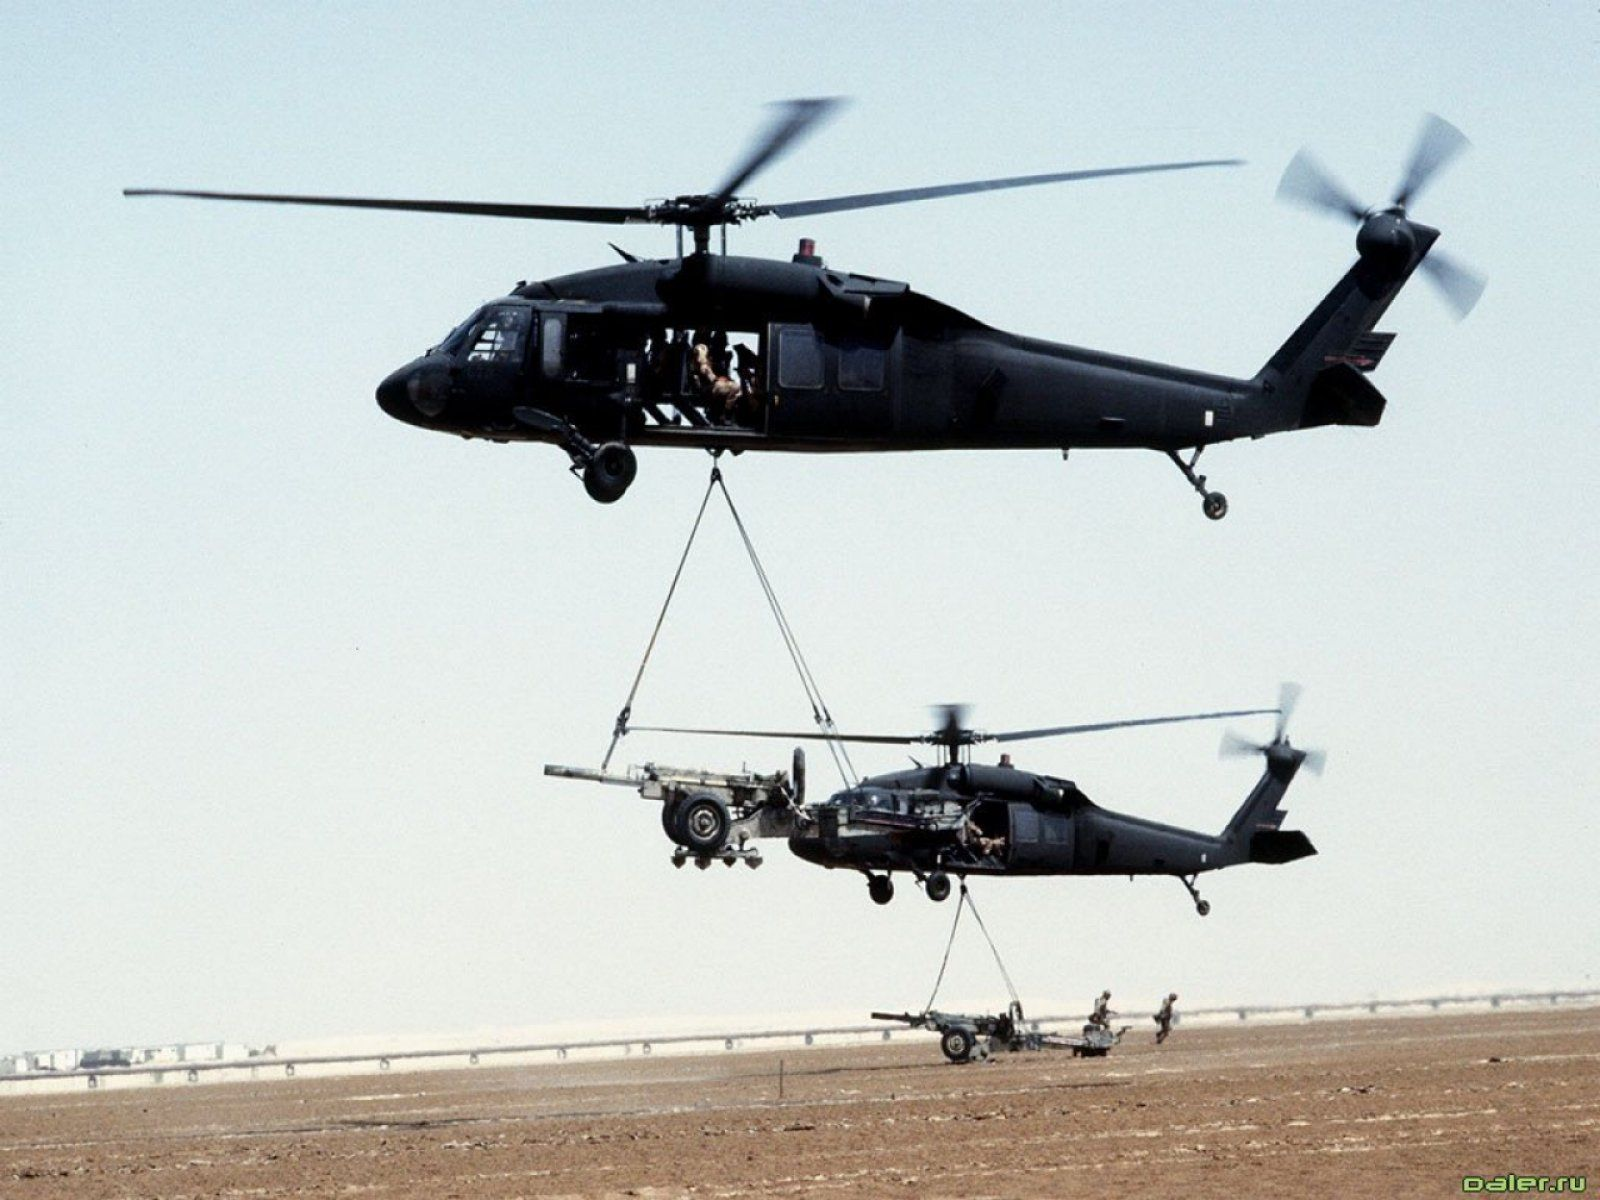 Helicopters Wallpapers Artillery Guns Army Puter Desktop Photo